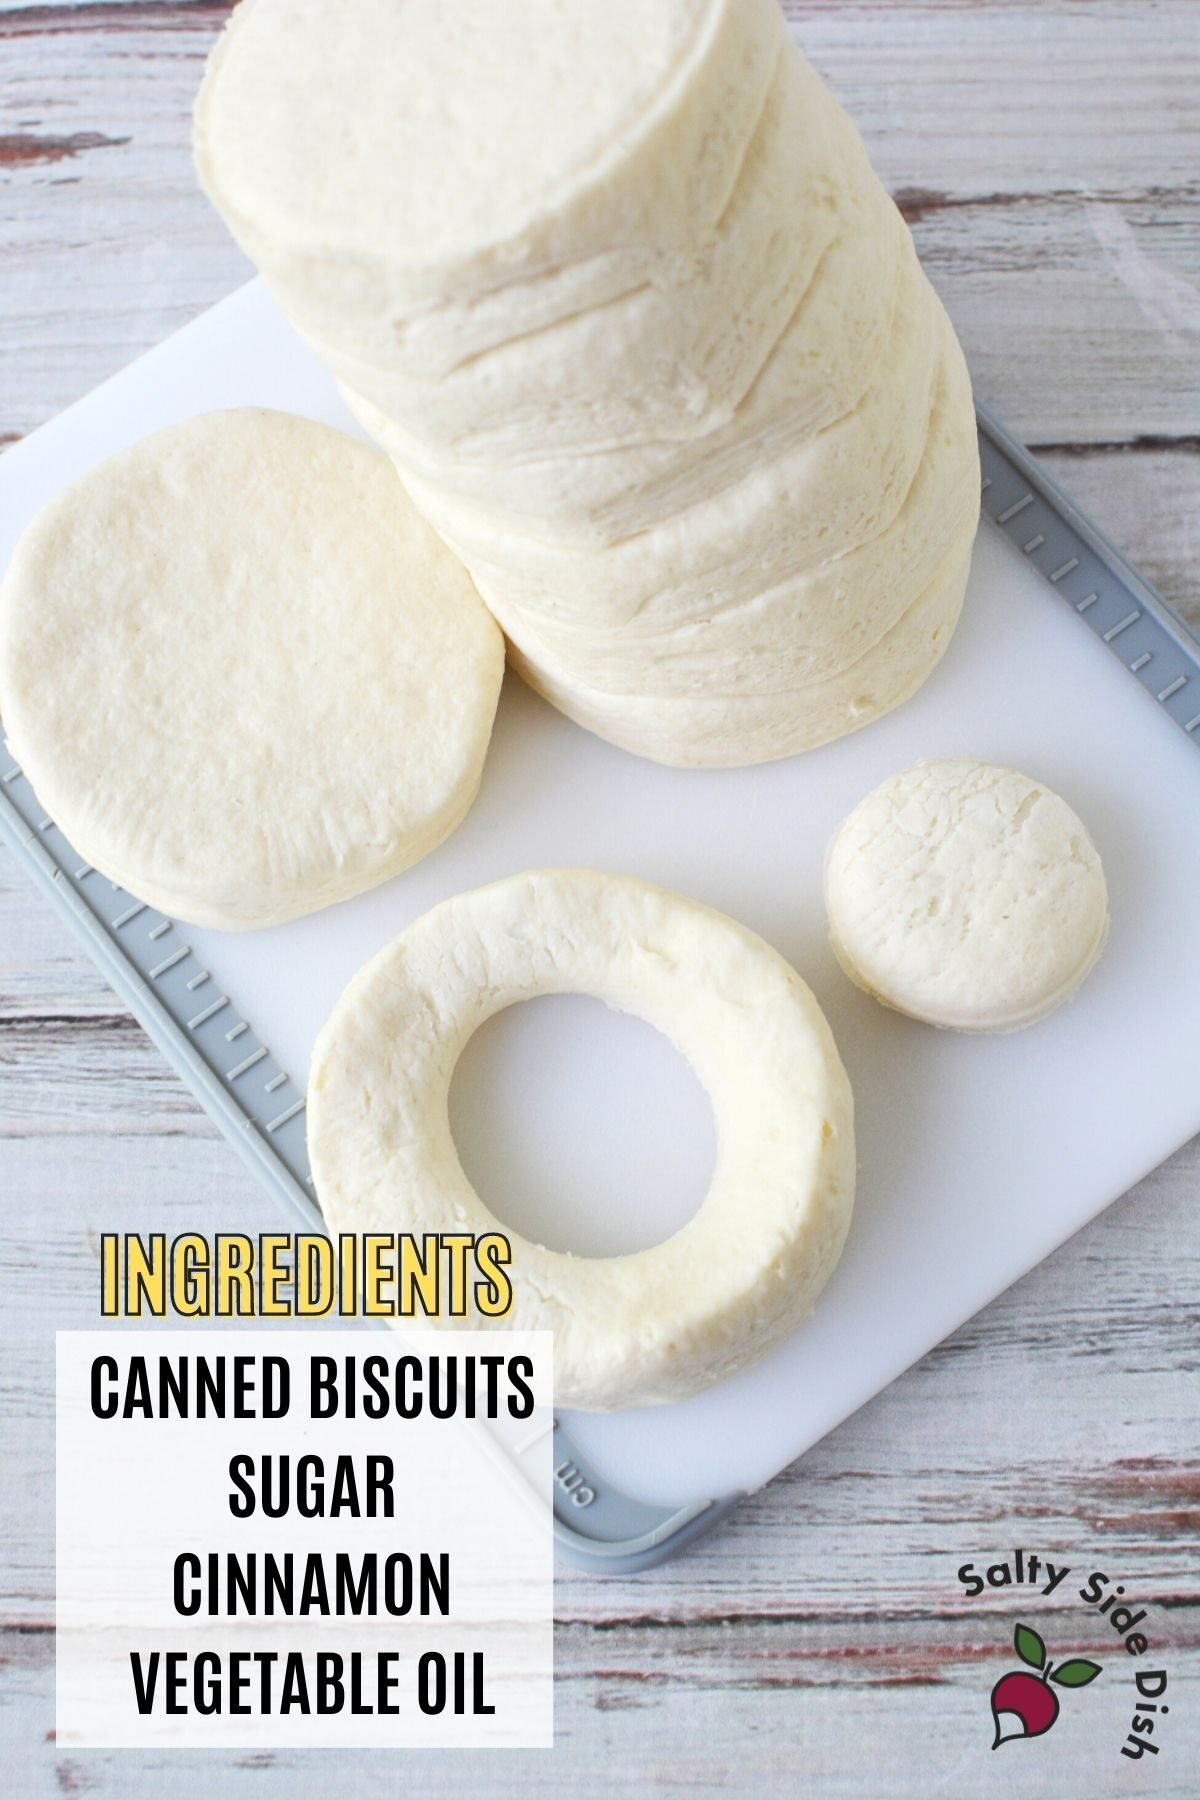 biscuits sitting on a cutting board with ingredient list on bottom left